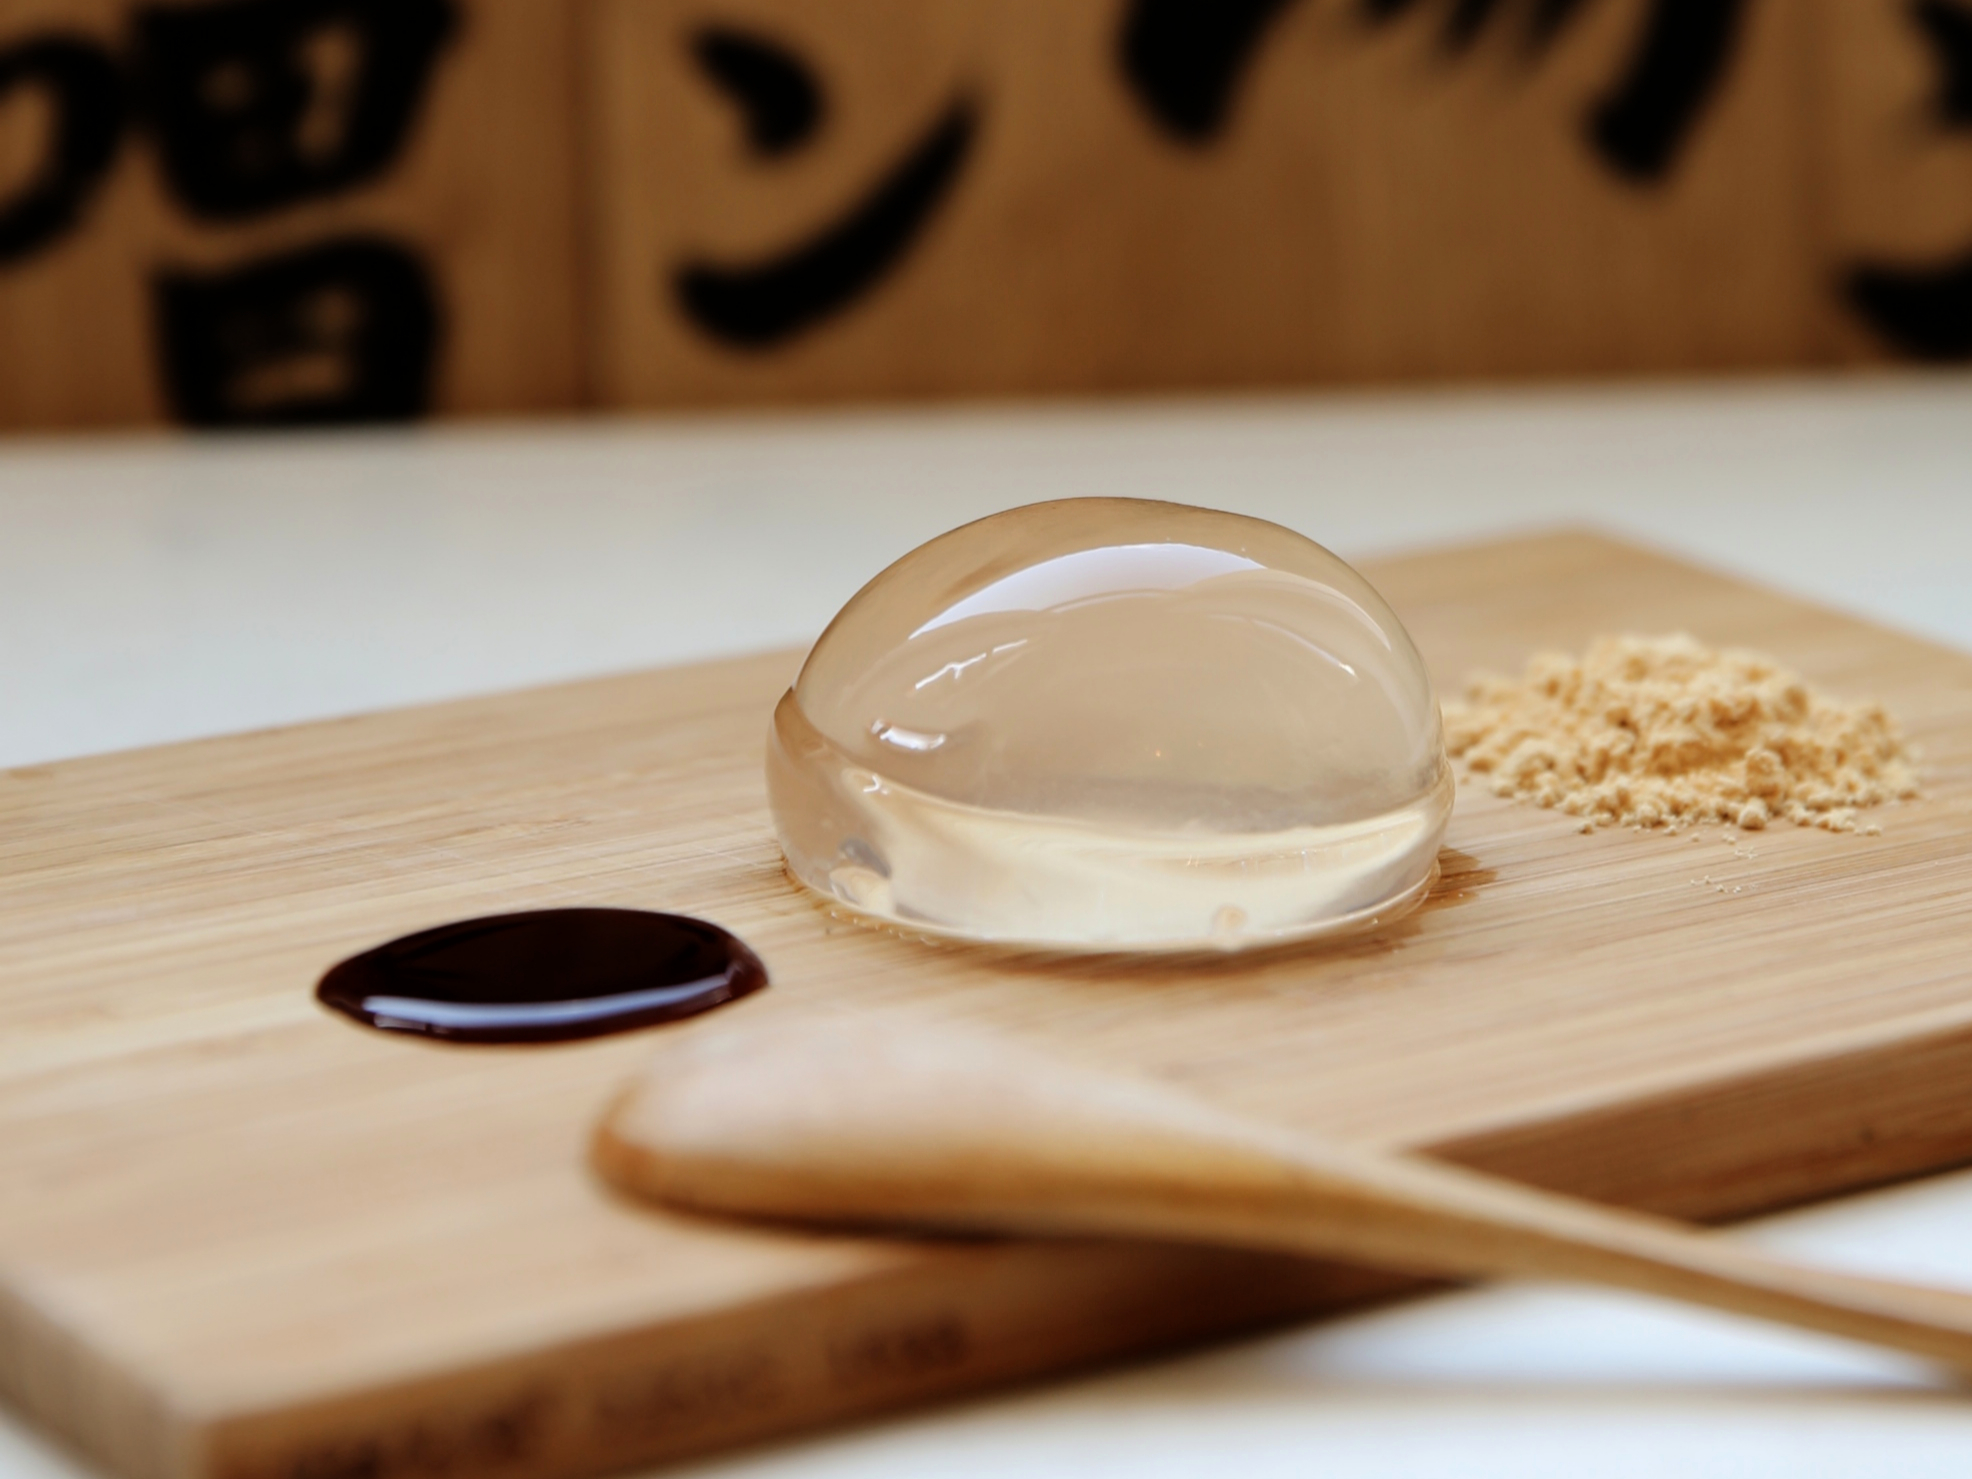 Raindrop cake on a wooden board with a wooden spoon